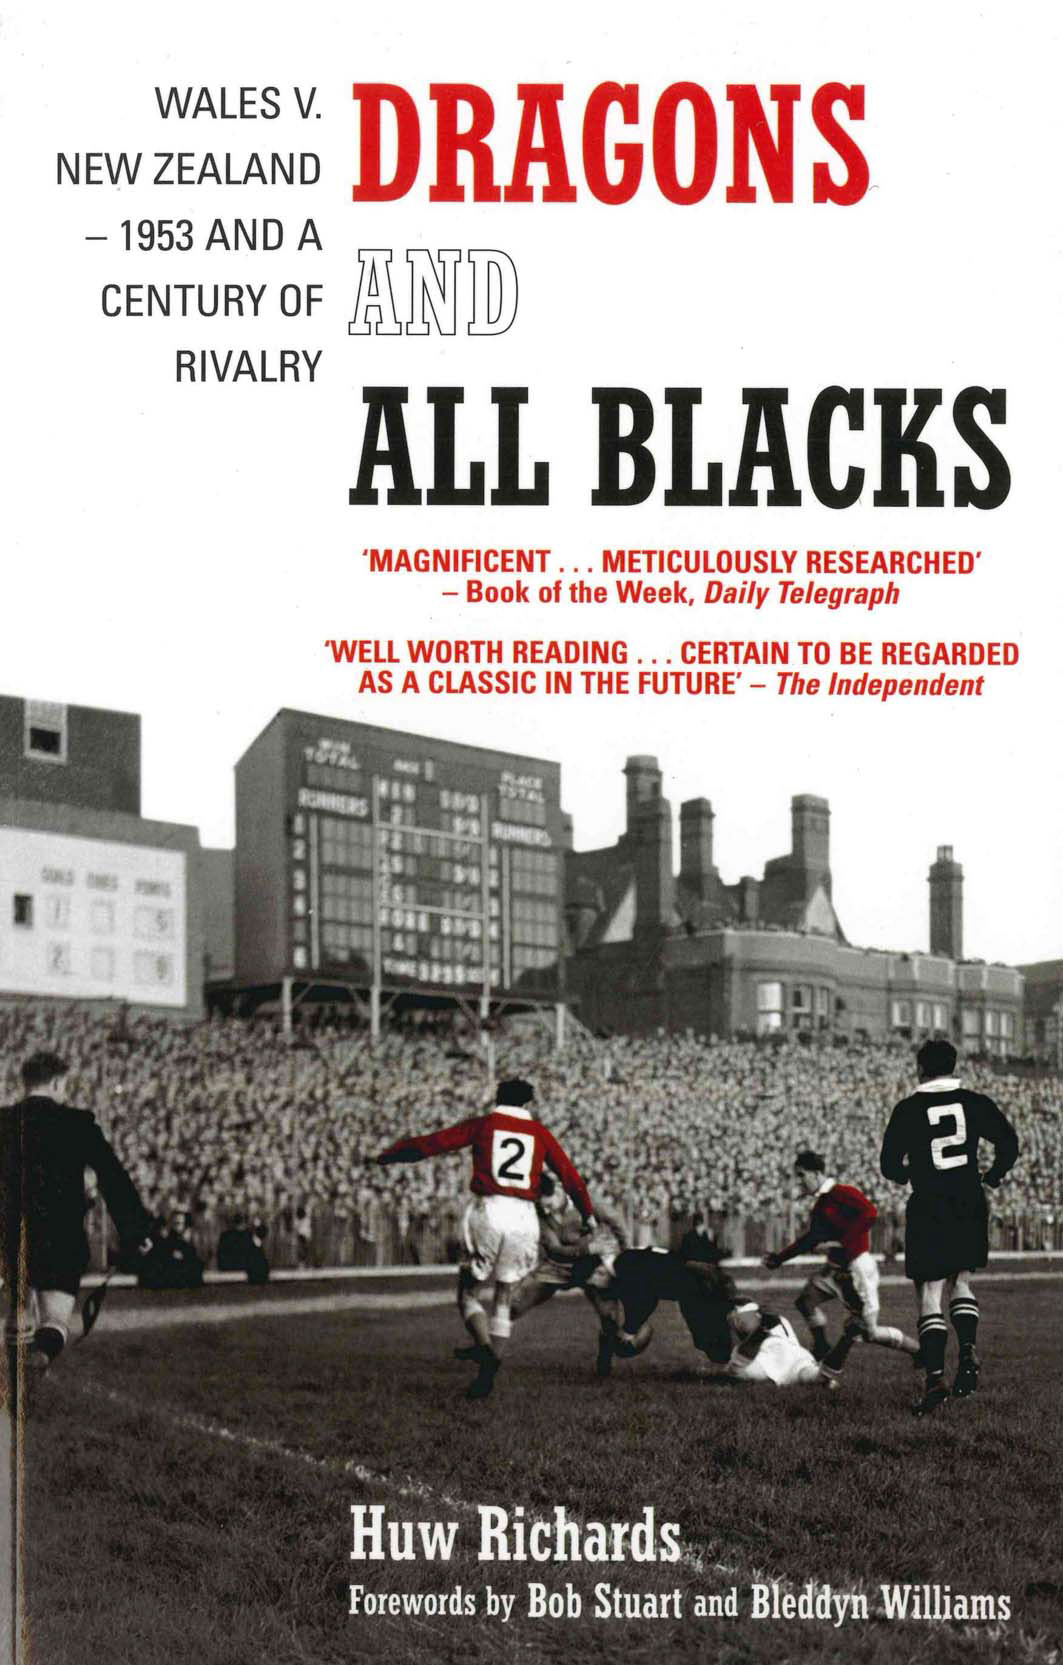 Dragons and All Blacks Wales v. New Zealand - 1953 and a Century of Rivalry